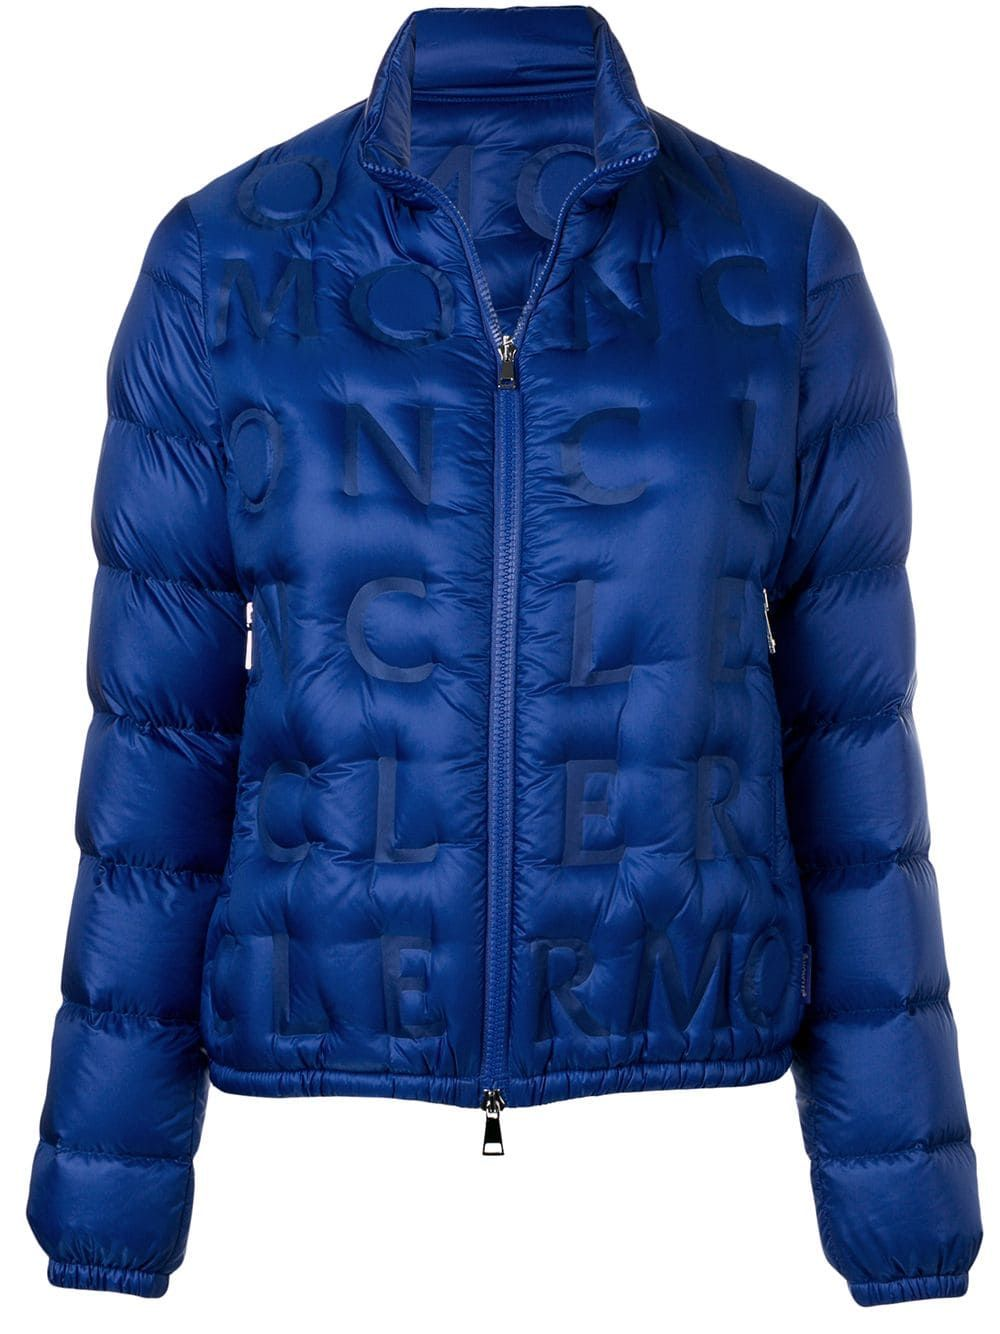 f084da766 Moncler embossed logo padded jacket - Blue in 2019 | Products ...